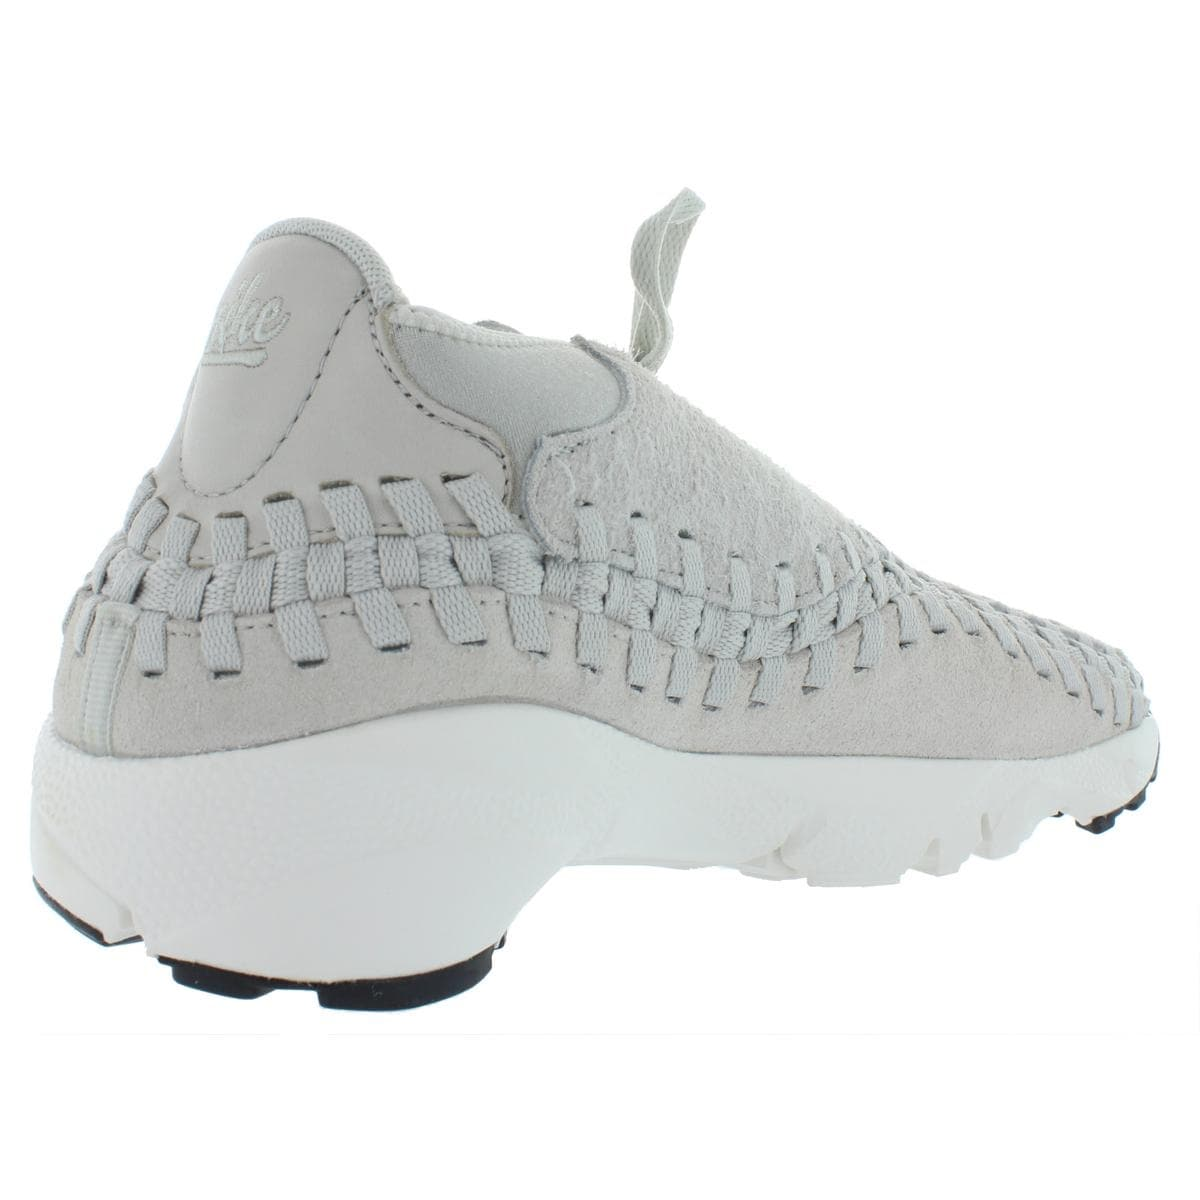 online retailer 110e1 5271c Shop Nike Mens Air Footscape Woven Chukka Chukka Suede Trainer - Free  Shipping Today - Overstock - 27876198